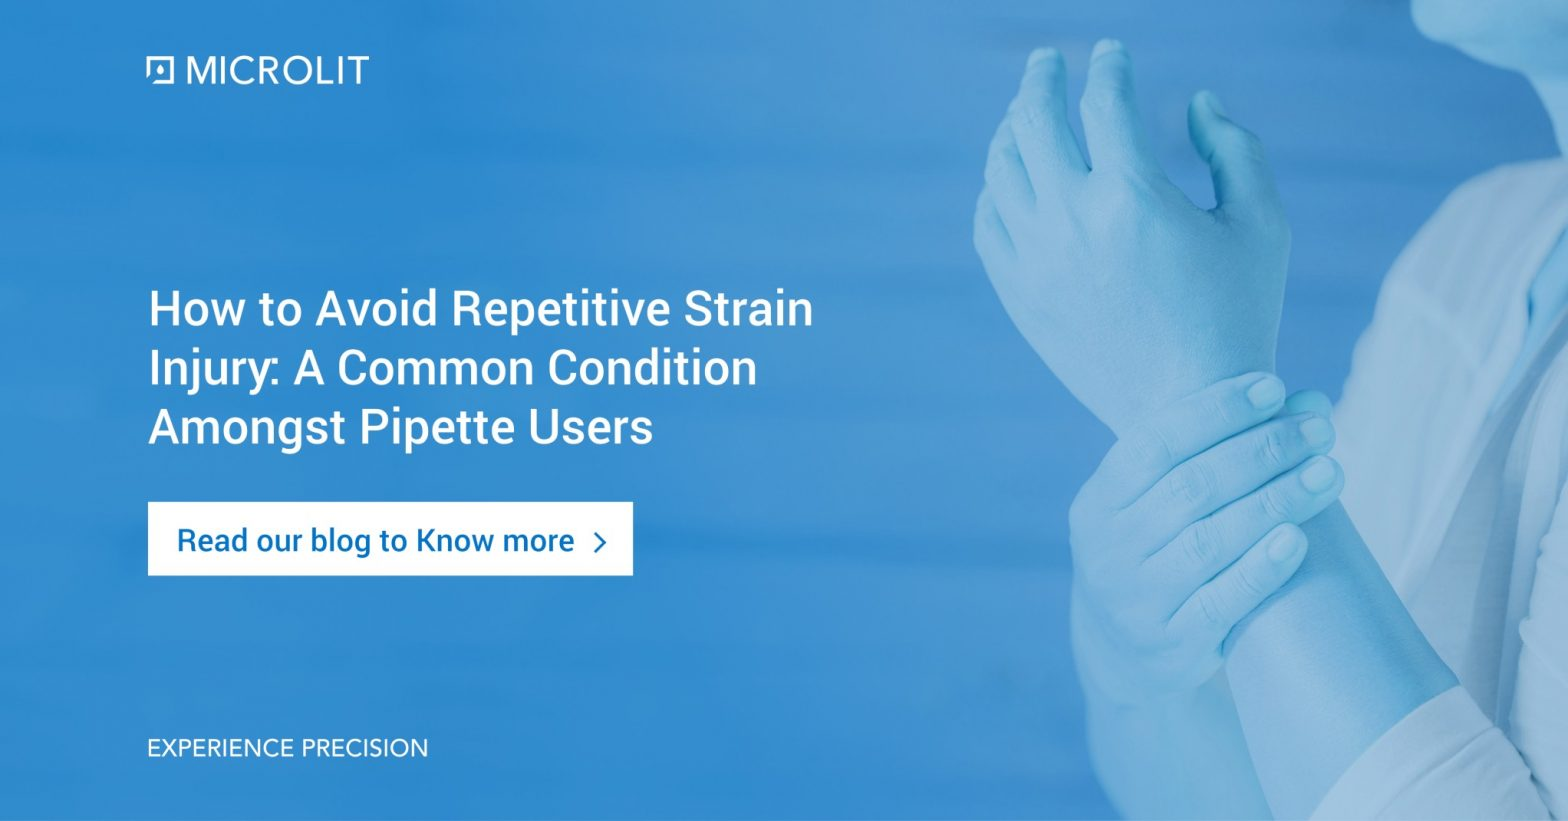 How to avoid repetitive strain injury